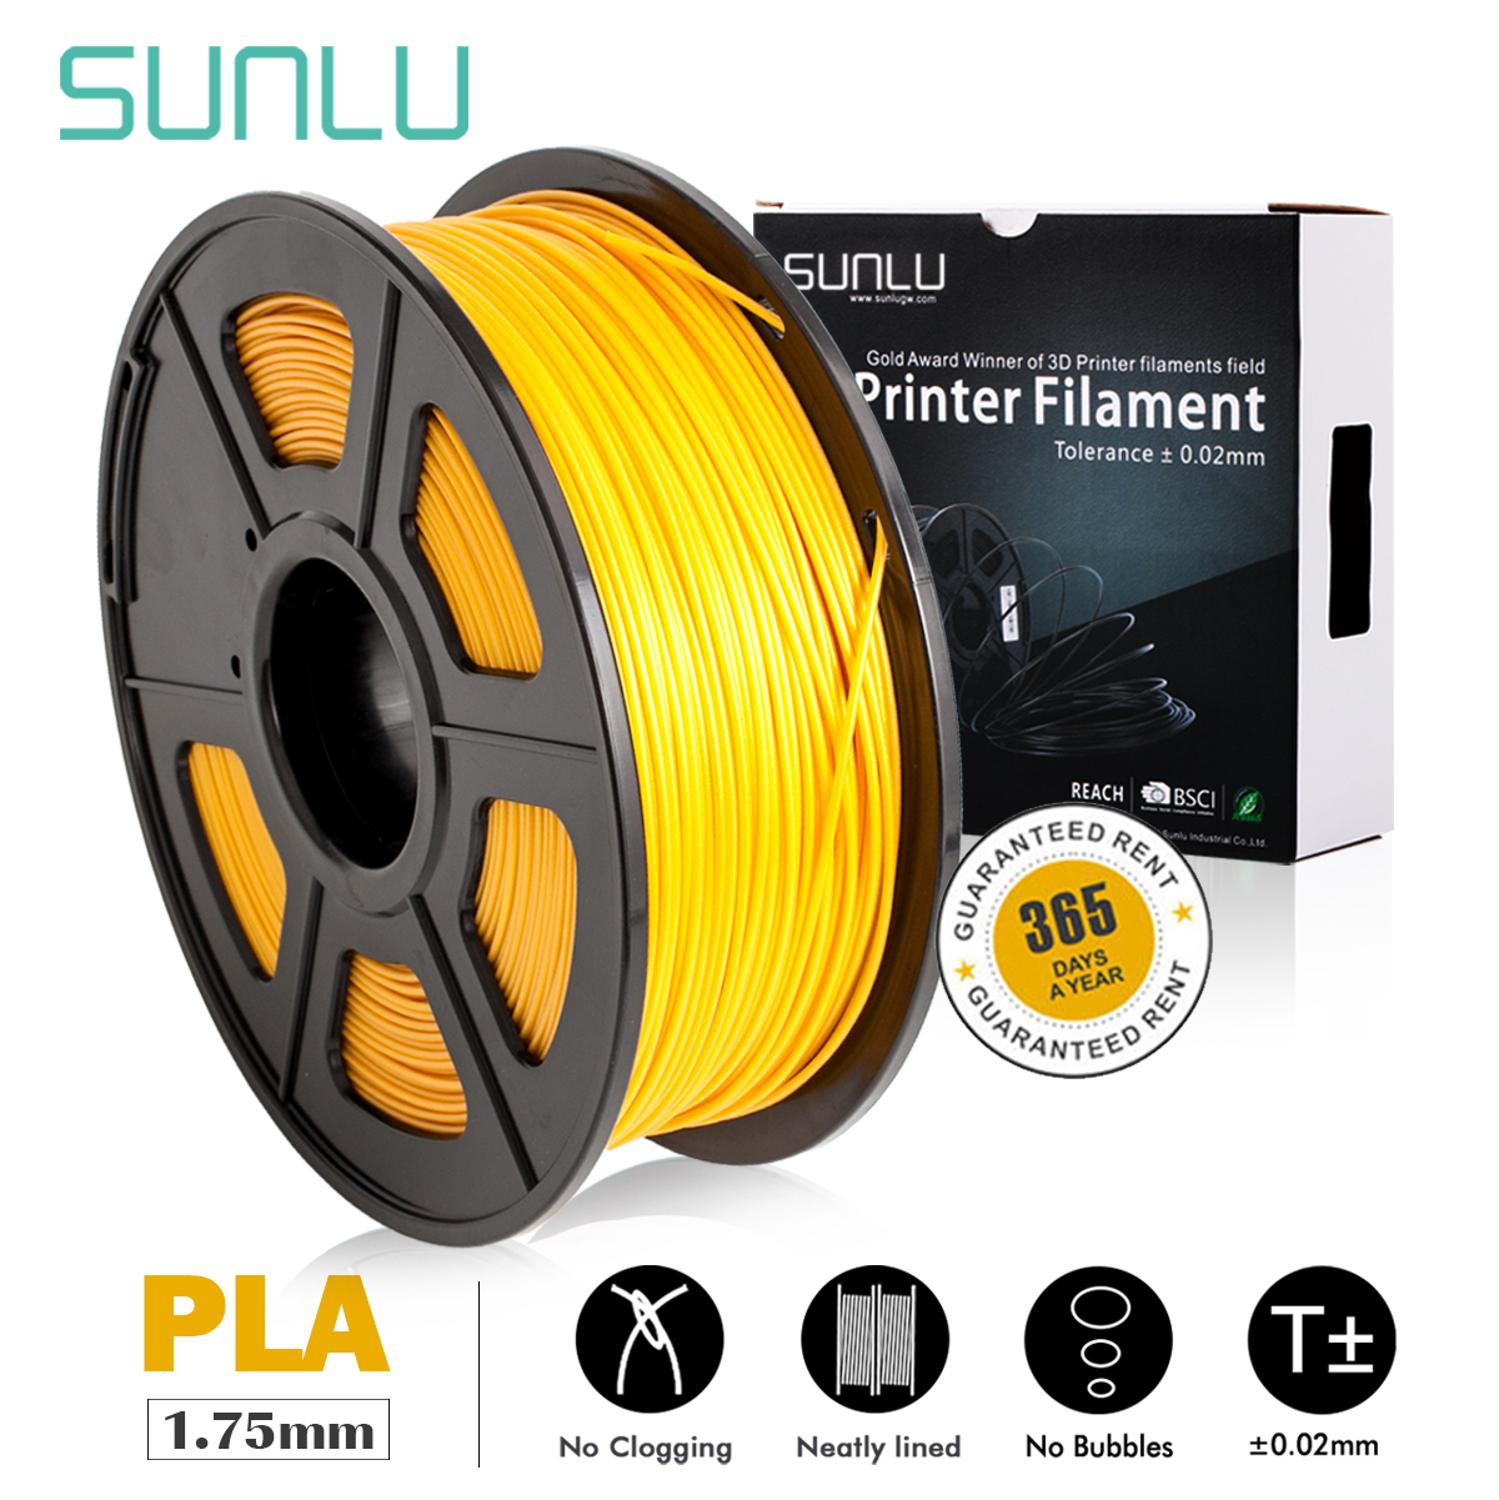 <font><b>3D</b></font> Printer <font><b>Filament</b></font> PLA/PLA PLUS 1.75mm 2.2 LBS 1KG Spool new fast ship new <font><b>3D</b></font> printing material for <font><b>3D</b></font> Printers and <font><b>3D</b></font> <font><b>Pens</b></font> image